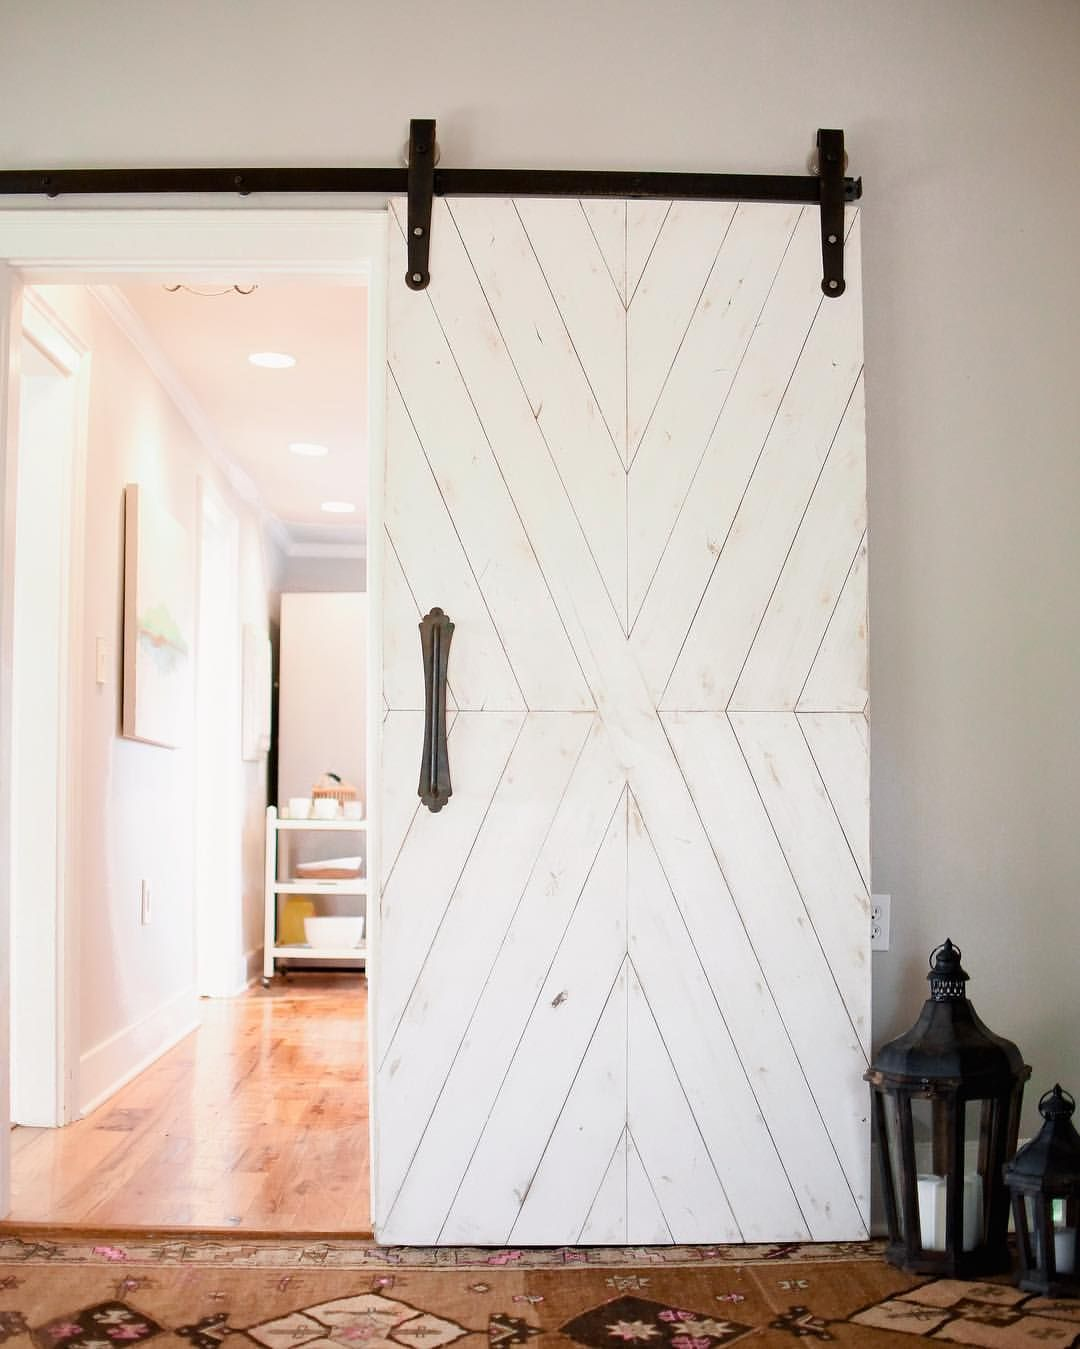 Pin by lindsey z on home decor pinterest future house and doors